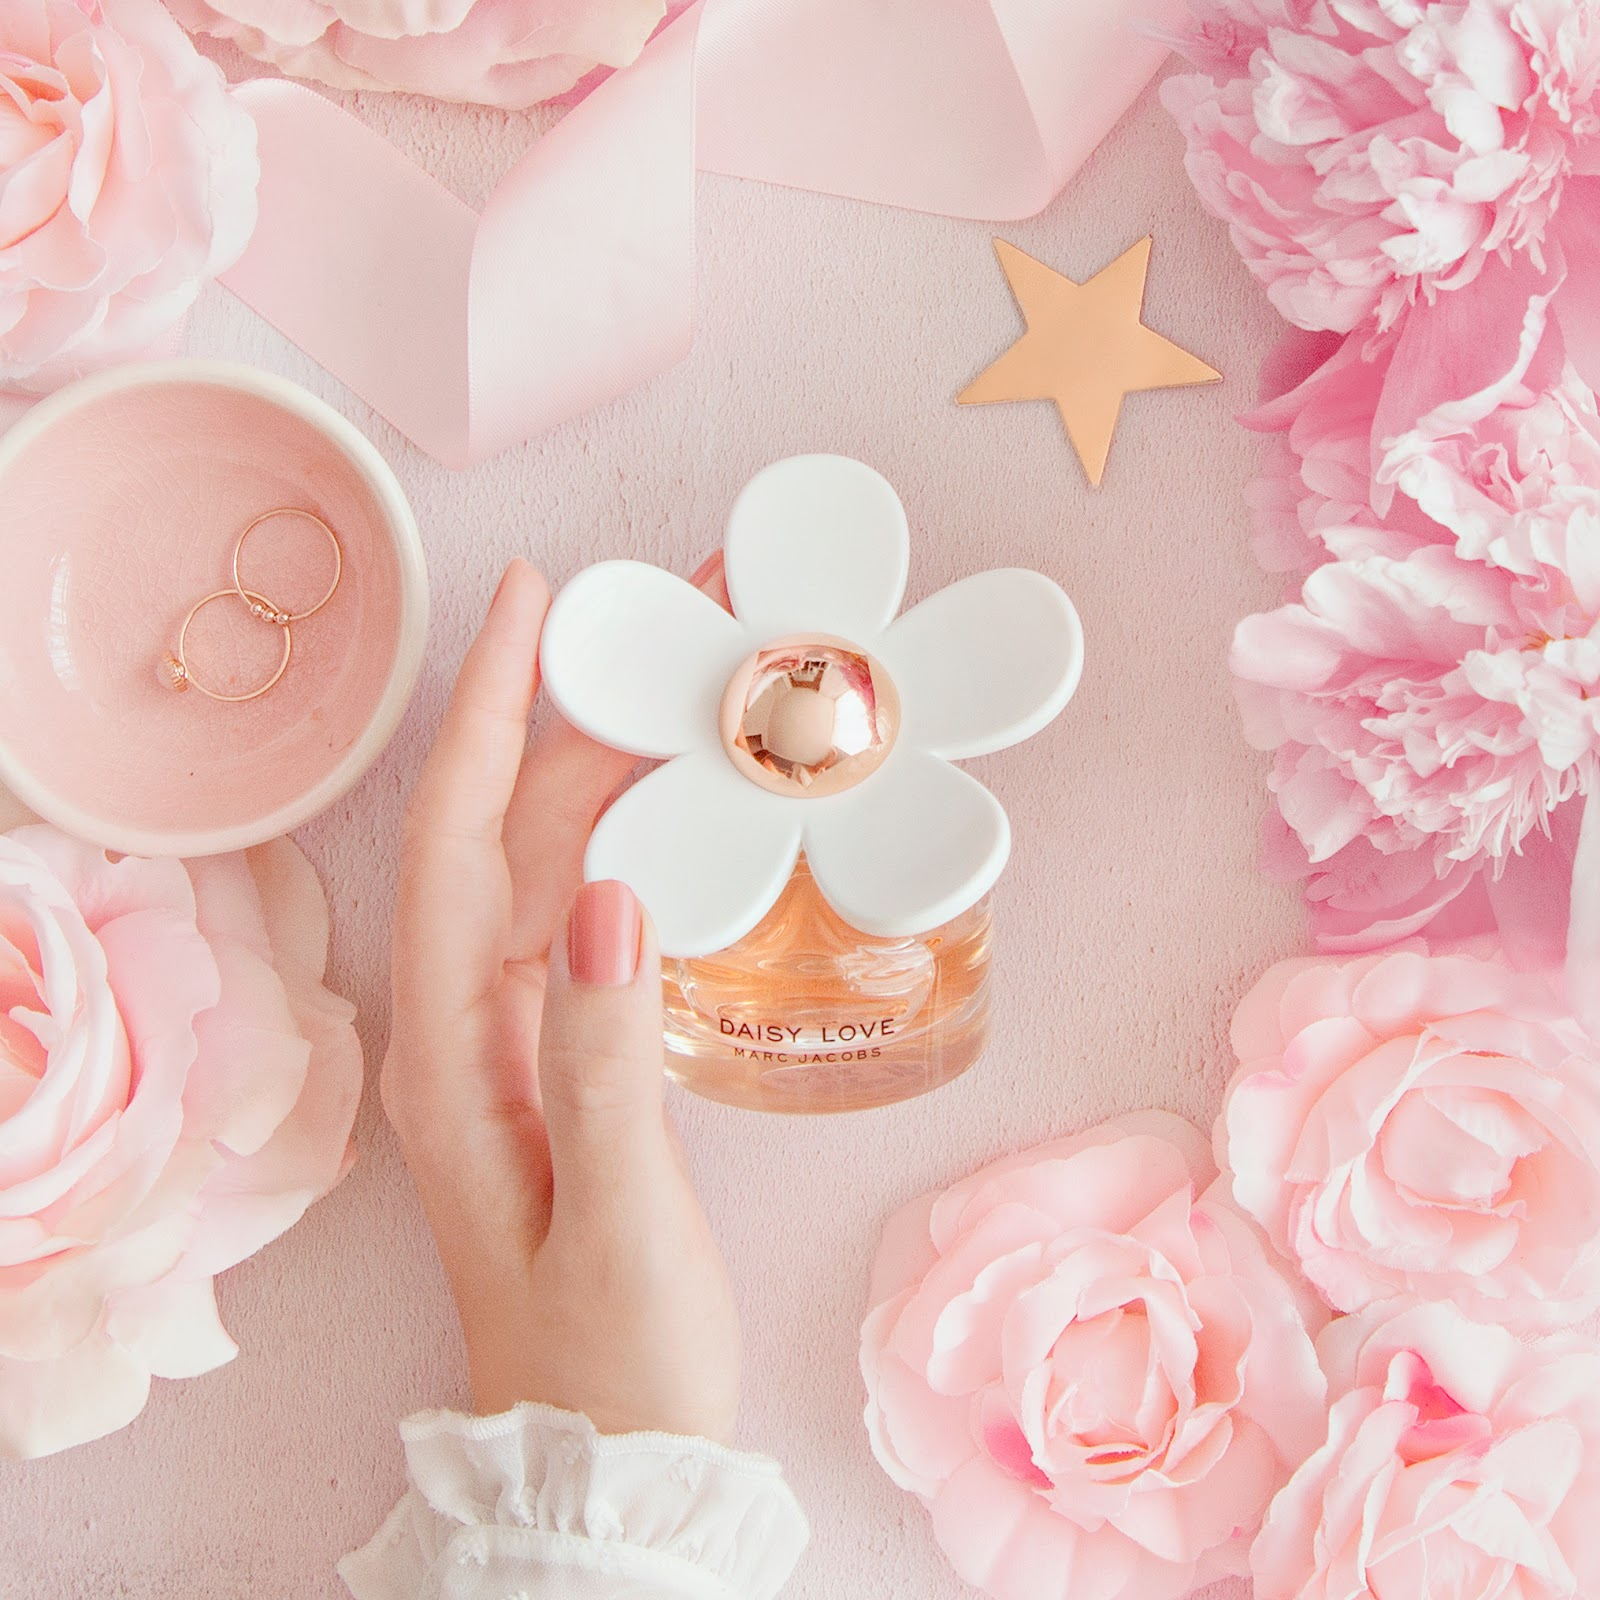 Friday Faye: Falling in Love with Daisy Love*